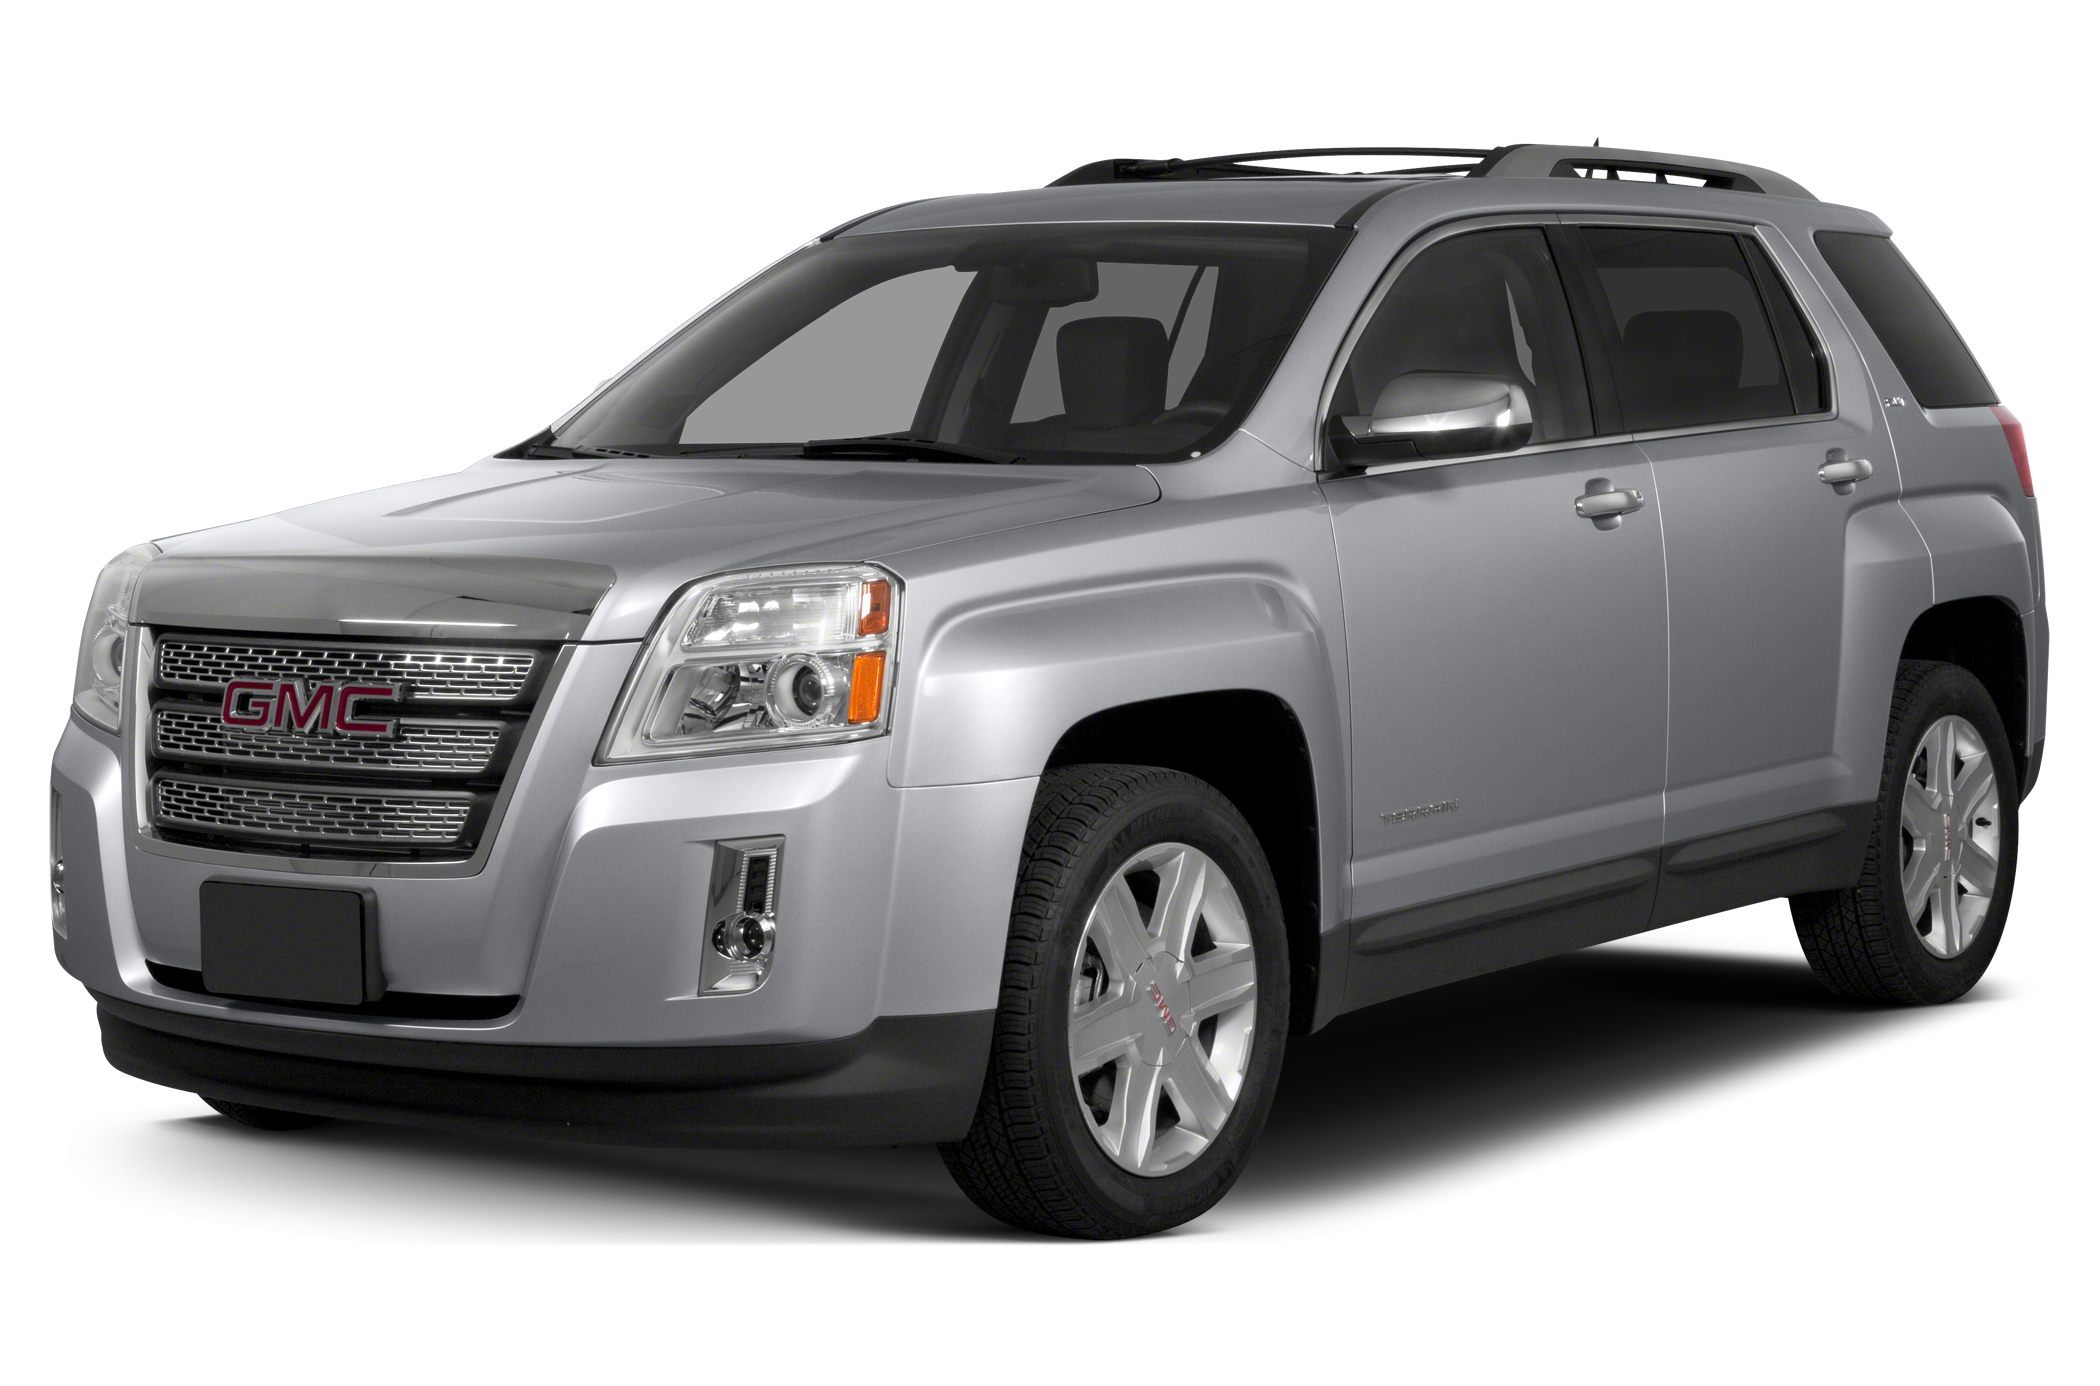 2015 GMC Terrain SLE-1 SUV for sale in Middlebury for $29,730 with 0 miles.